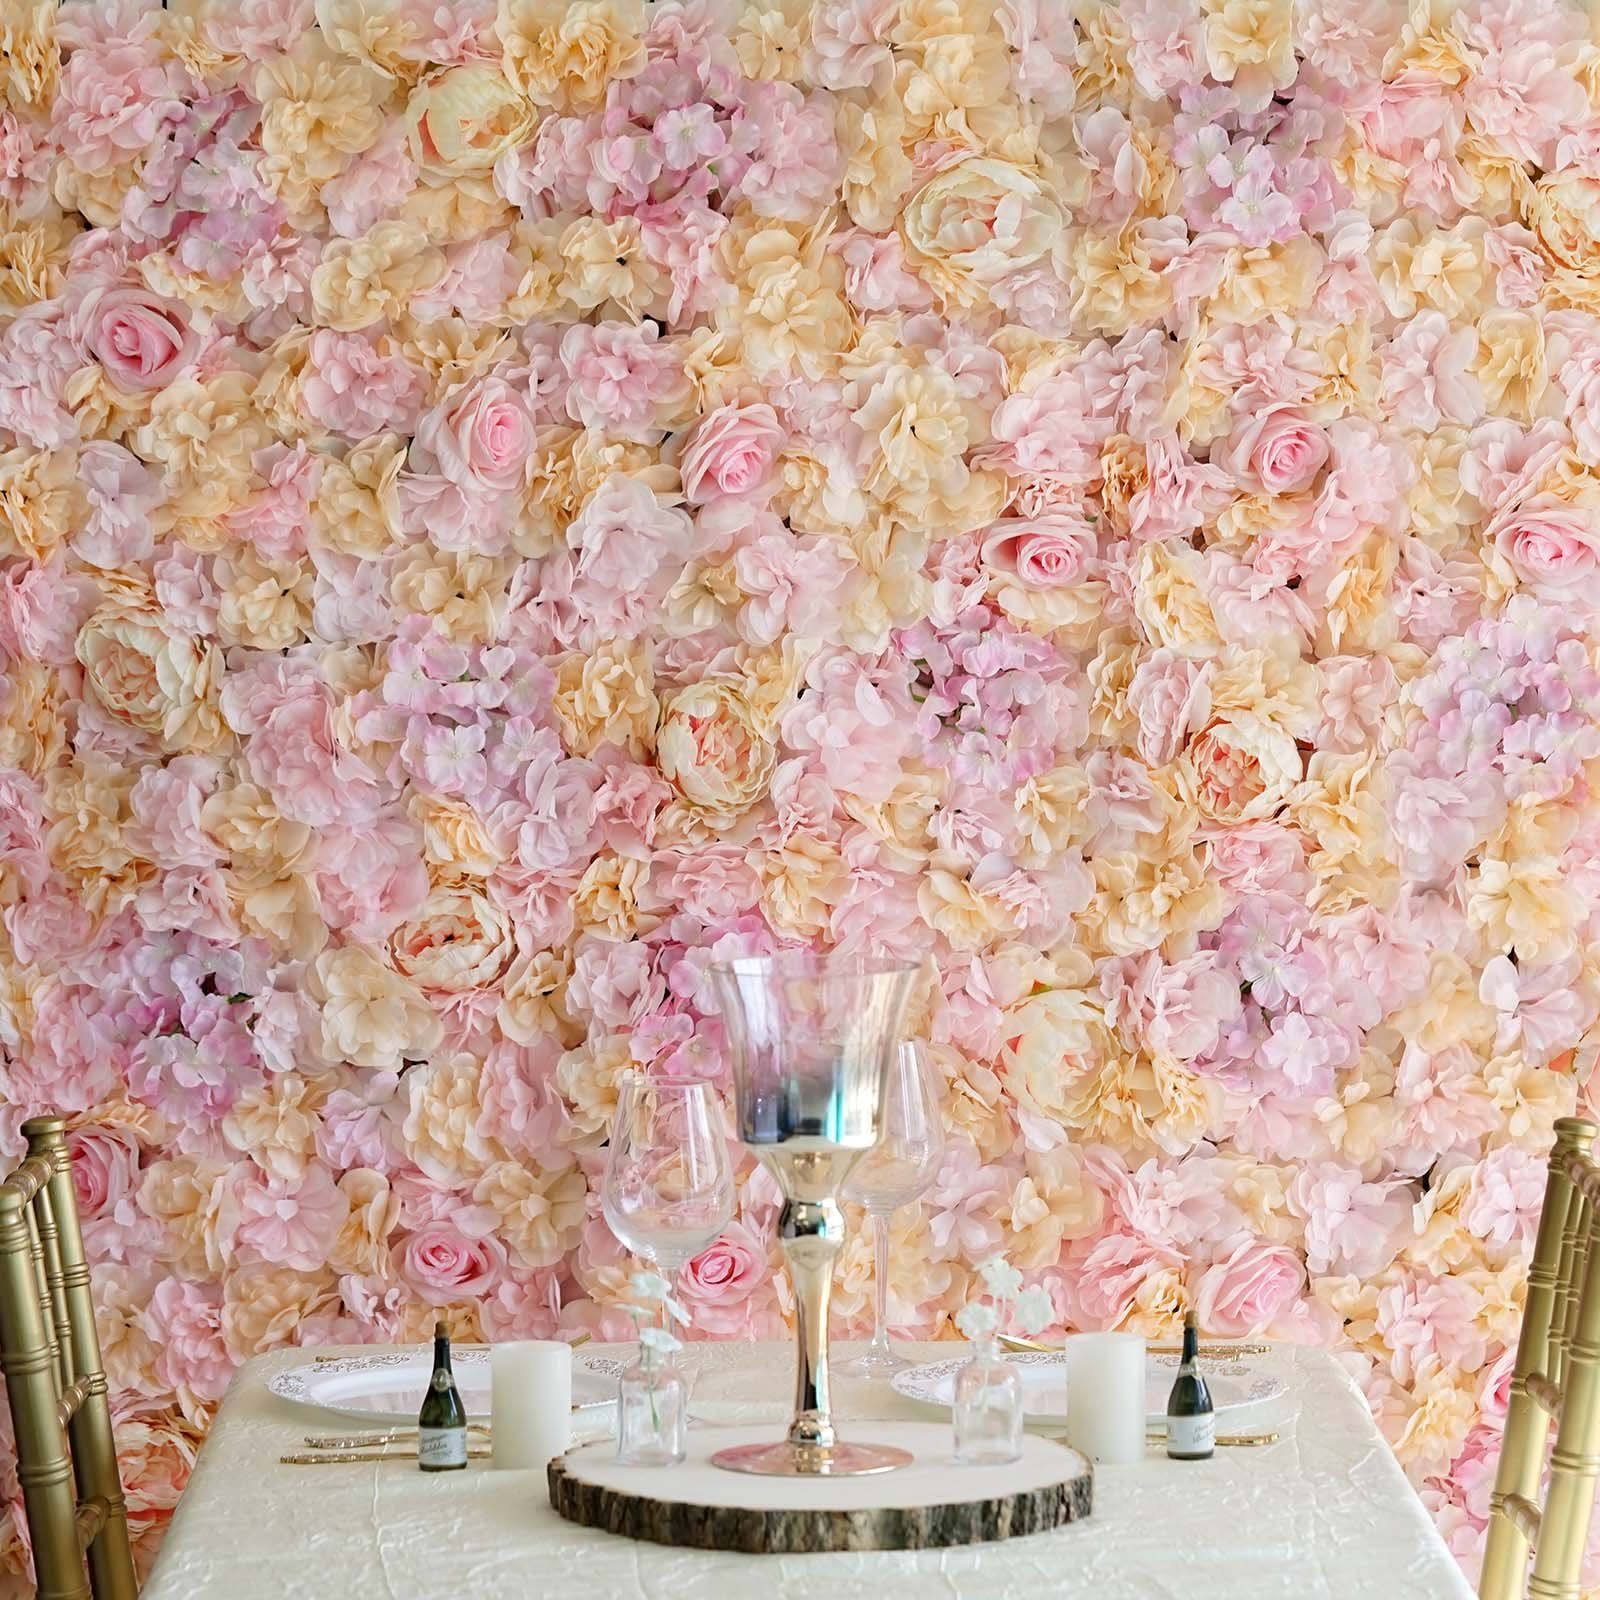 13 Sq Ft Set Of 4 Uv Protected Assorted Silk Flower Wall Panels Flower Wall Backdrop Pink Champagne In 2020 Flower Wall Backdrop Flower Wall Silk Flowers